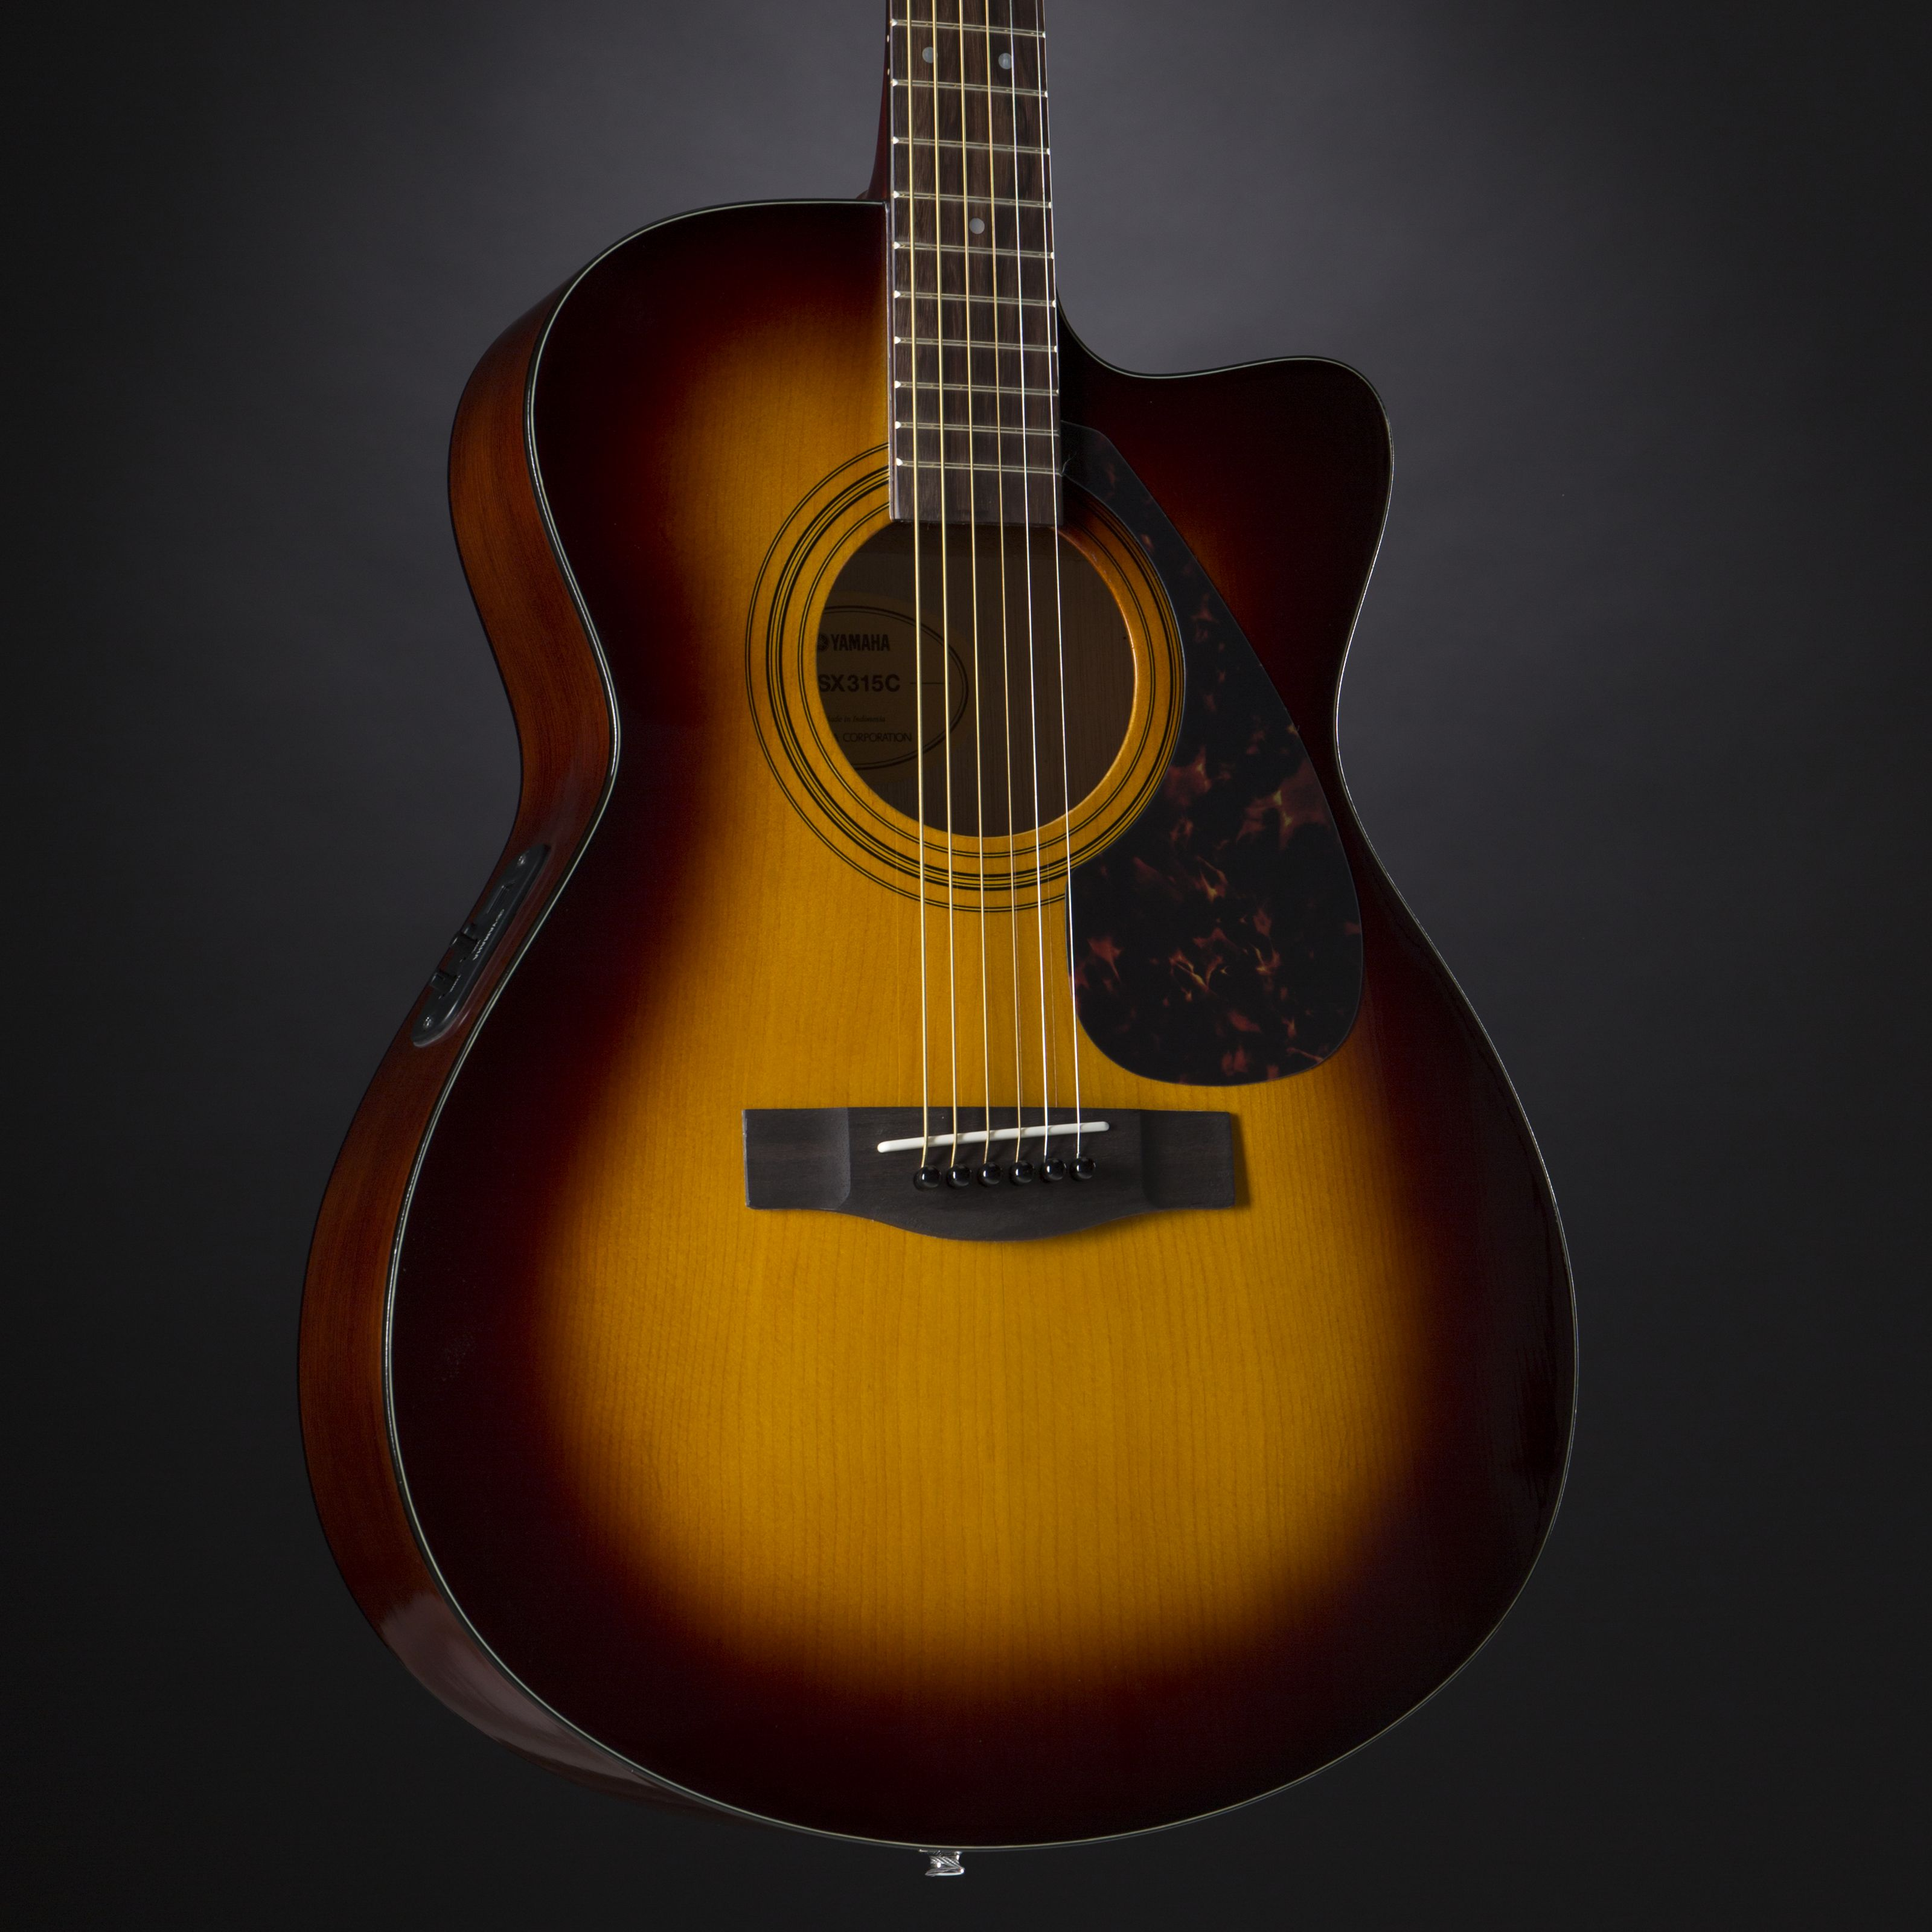 Yamaha FSX 315 C TBS Tobacco Brown Sunburst